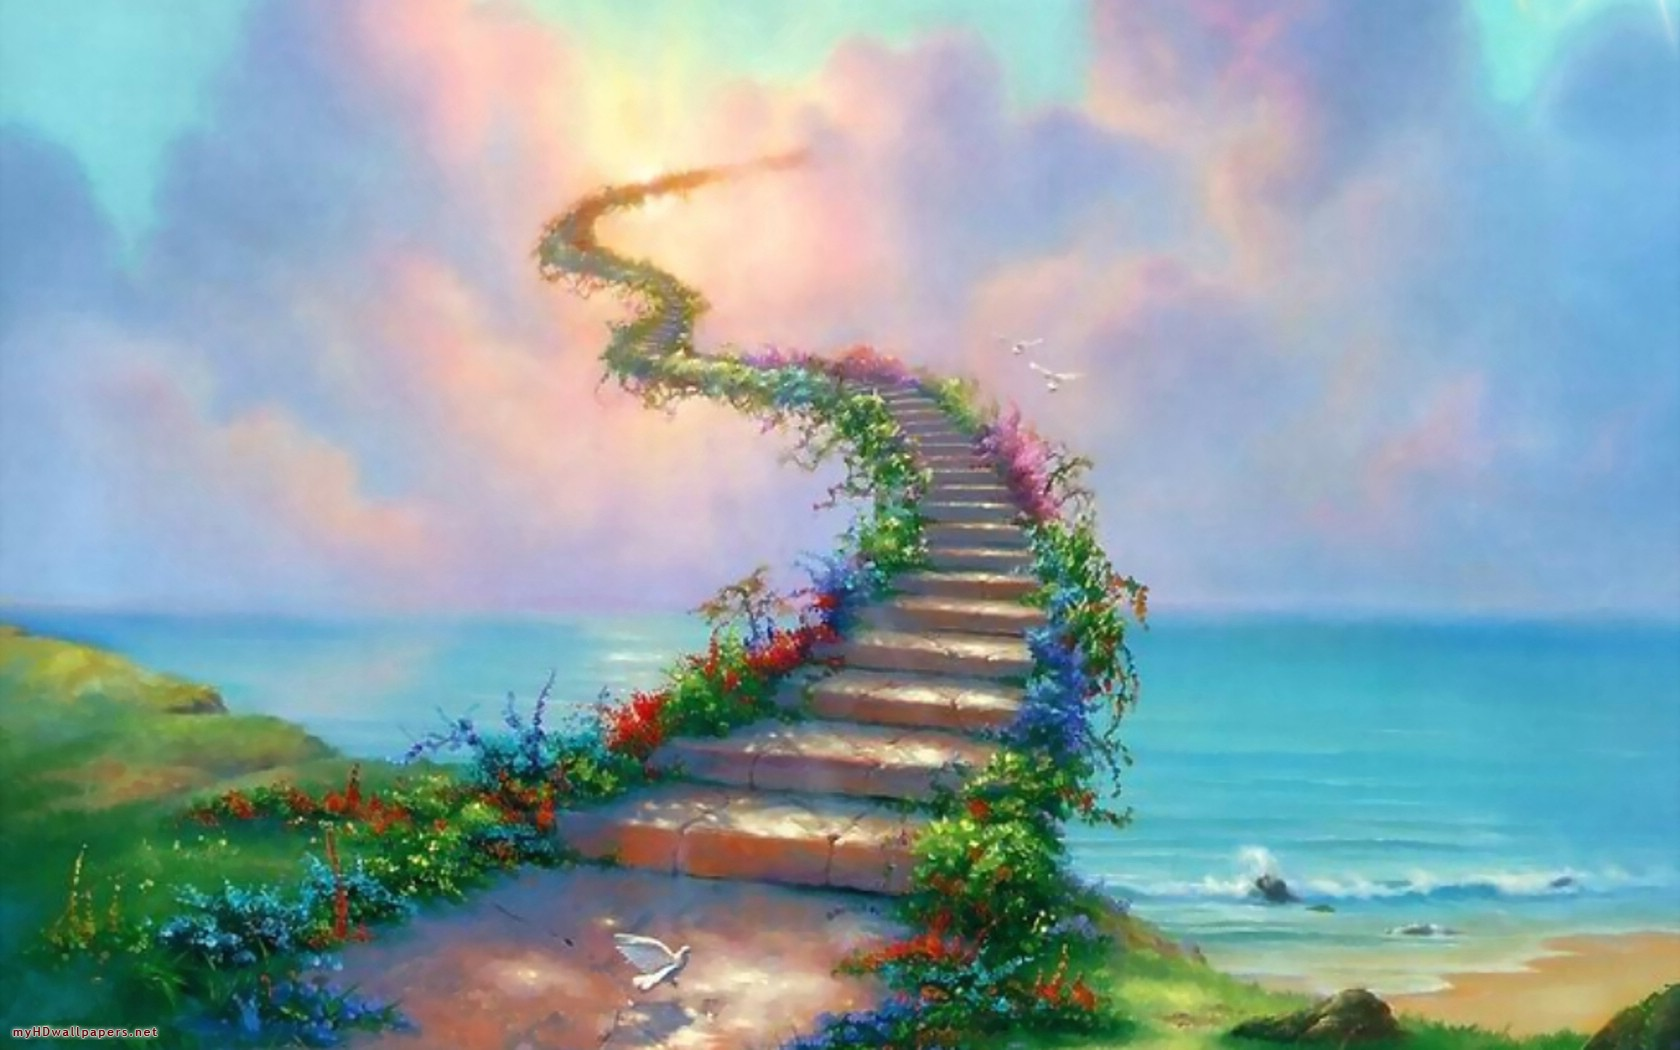 Stairway To Heaven wallpapers | Stairway To Heaven stock ...